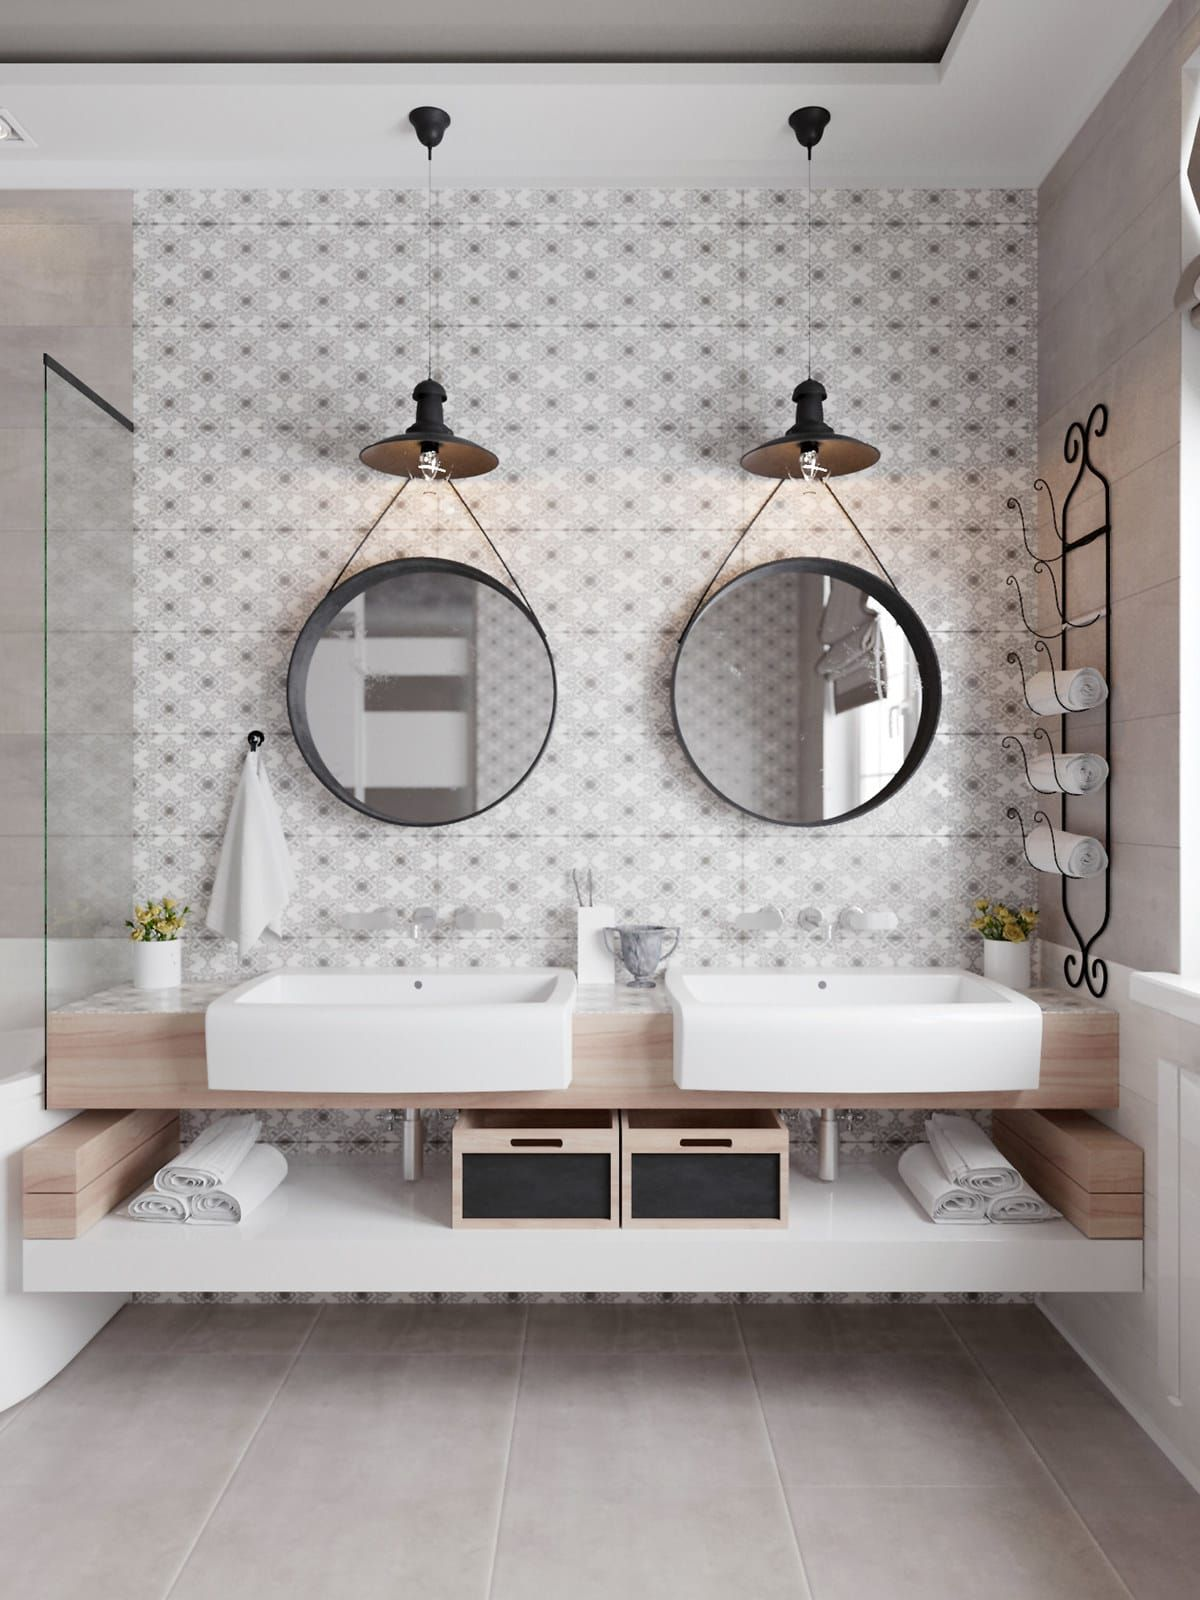 à pinglà par heather linford sur bathrooms pinterest salle de